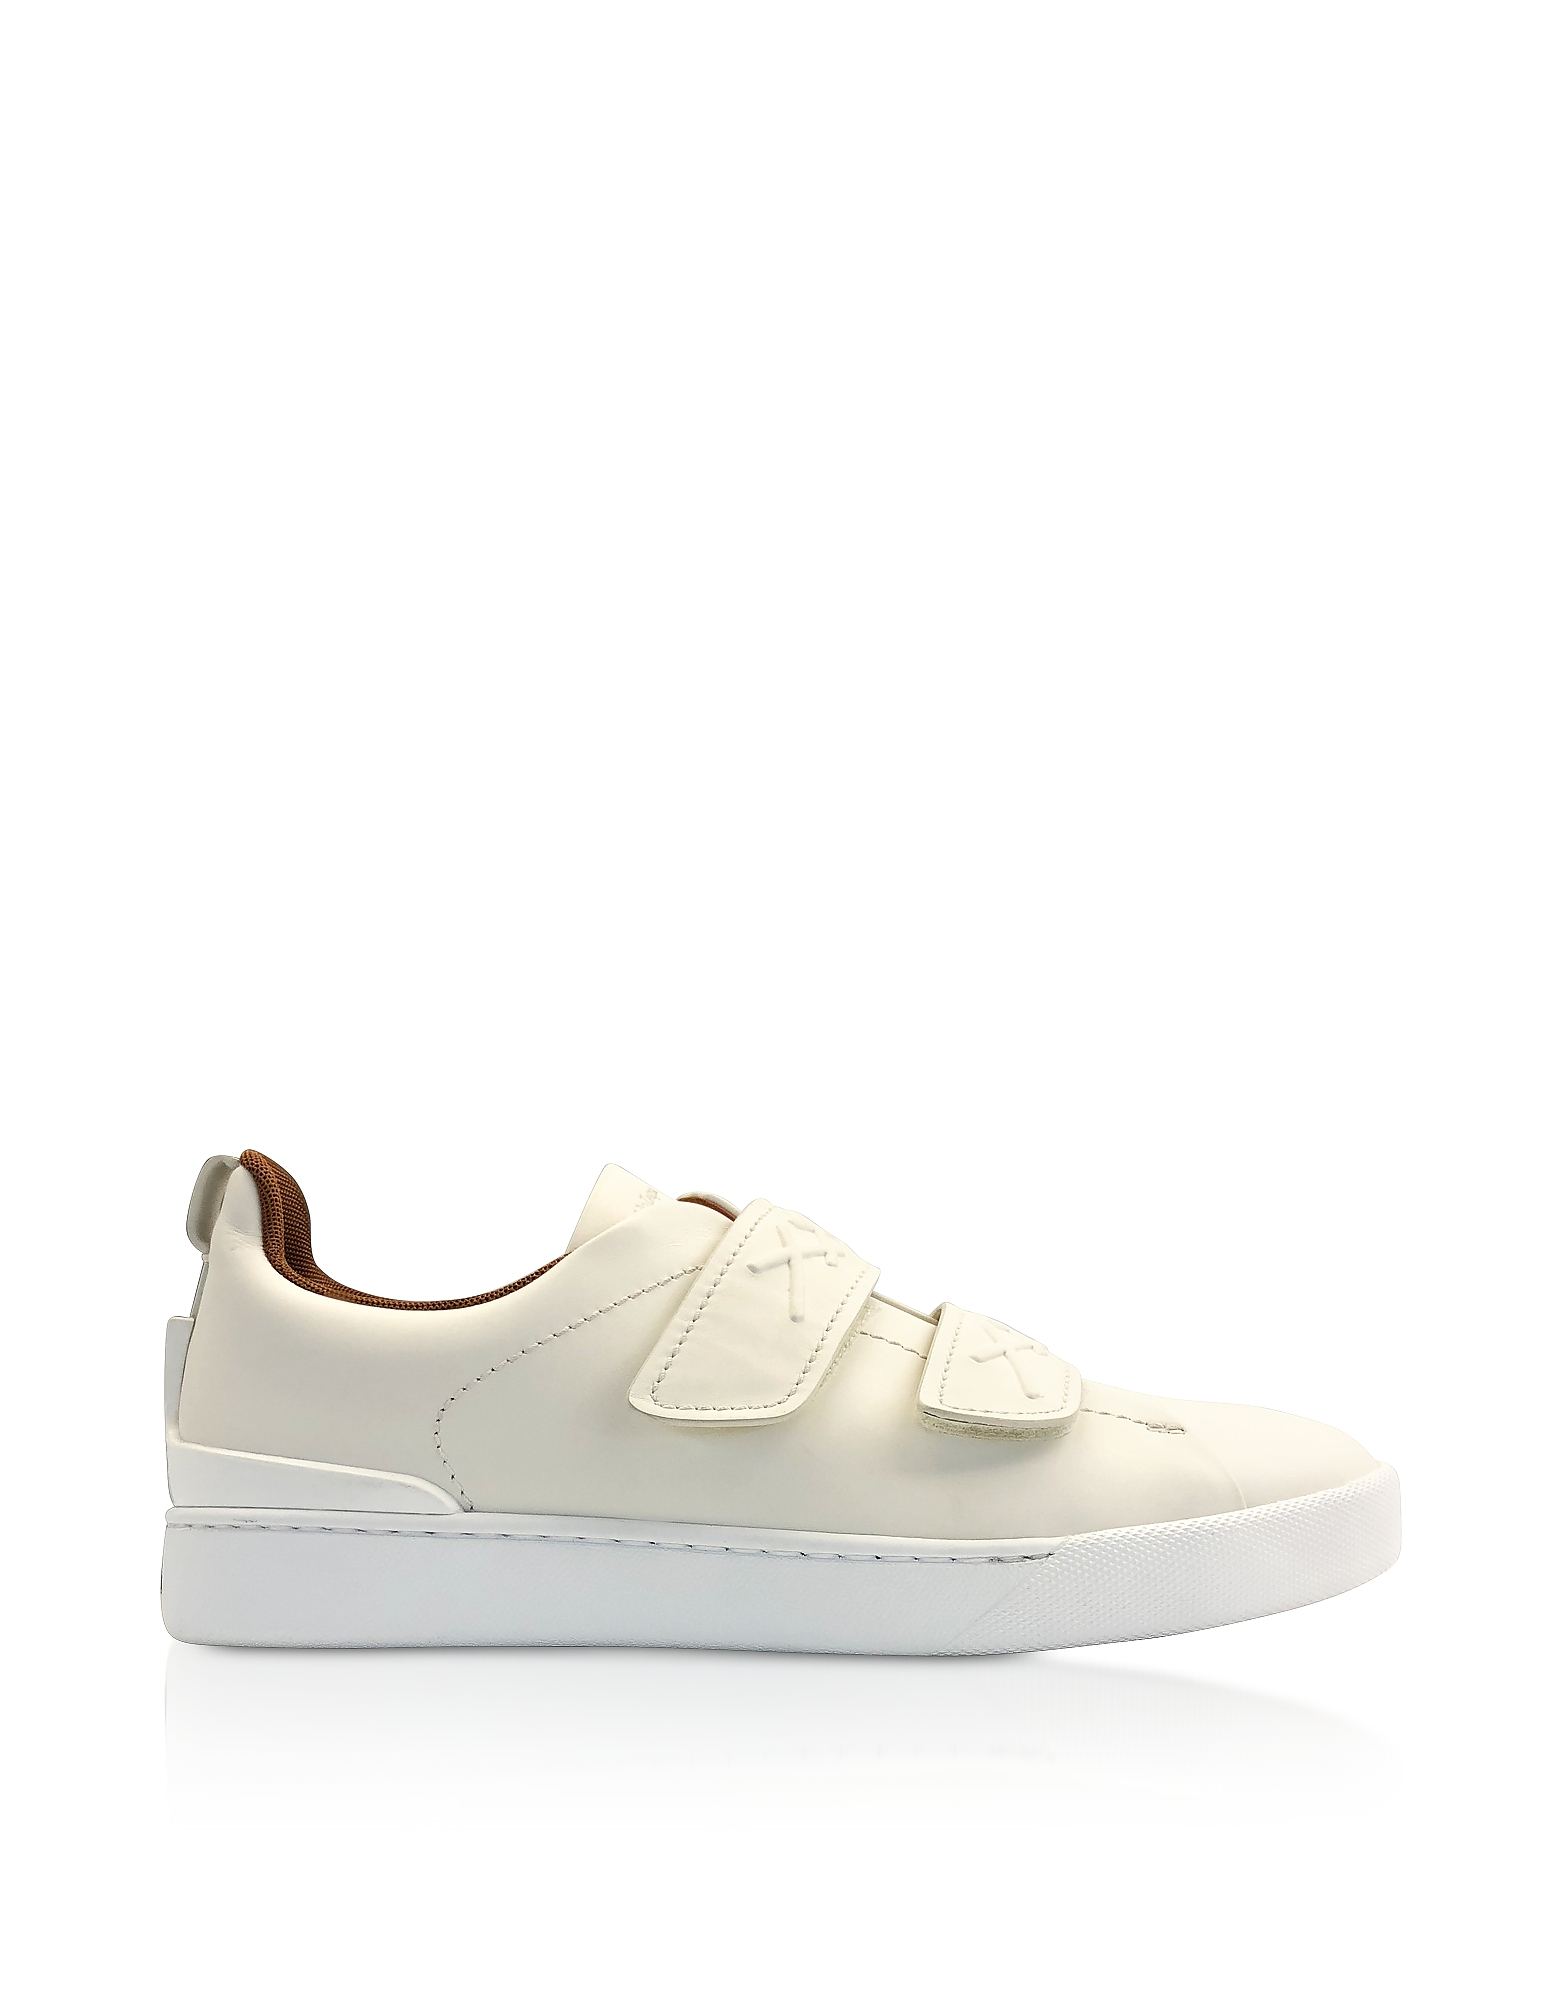 Ermenegildo Zegna Designer Shoes, White Leather Low-Top Sneakers